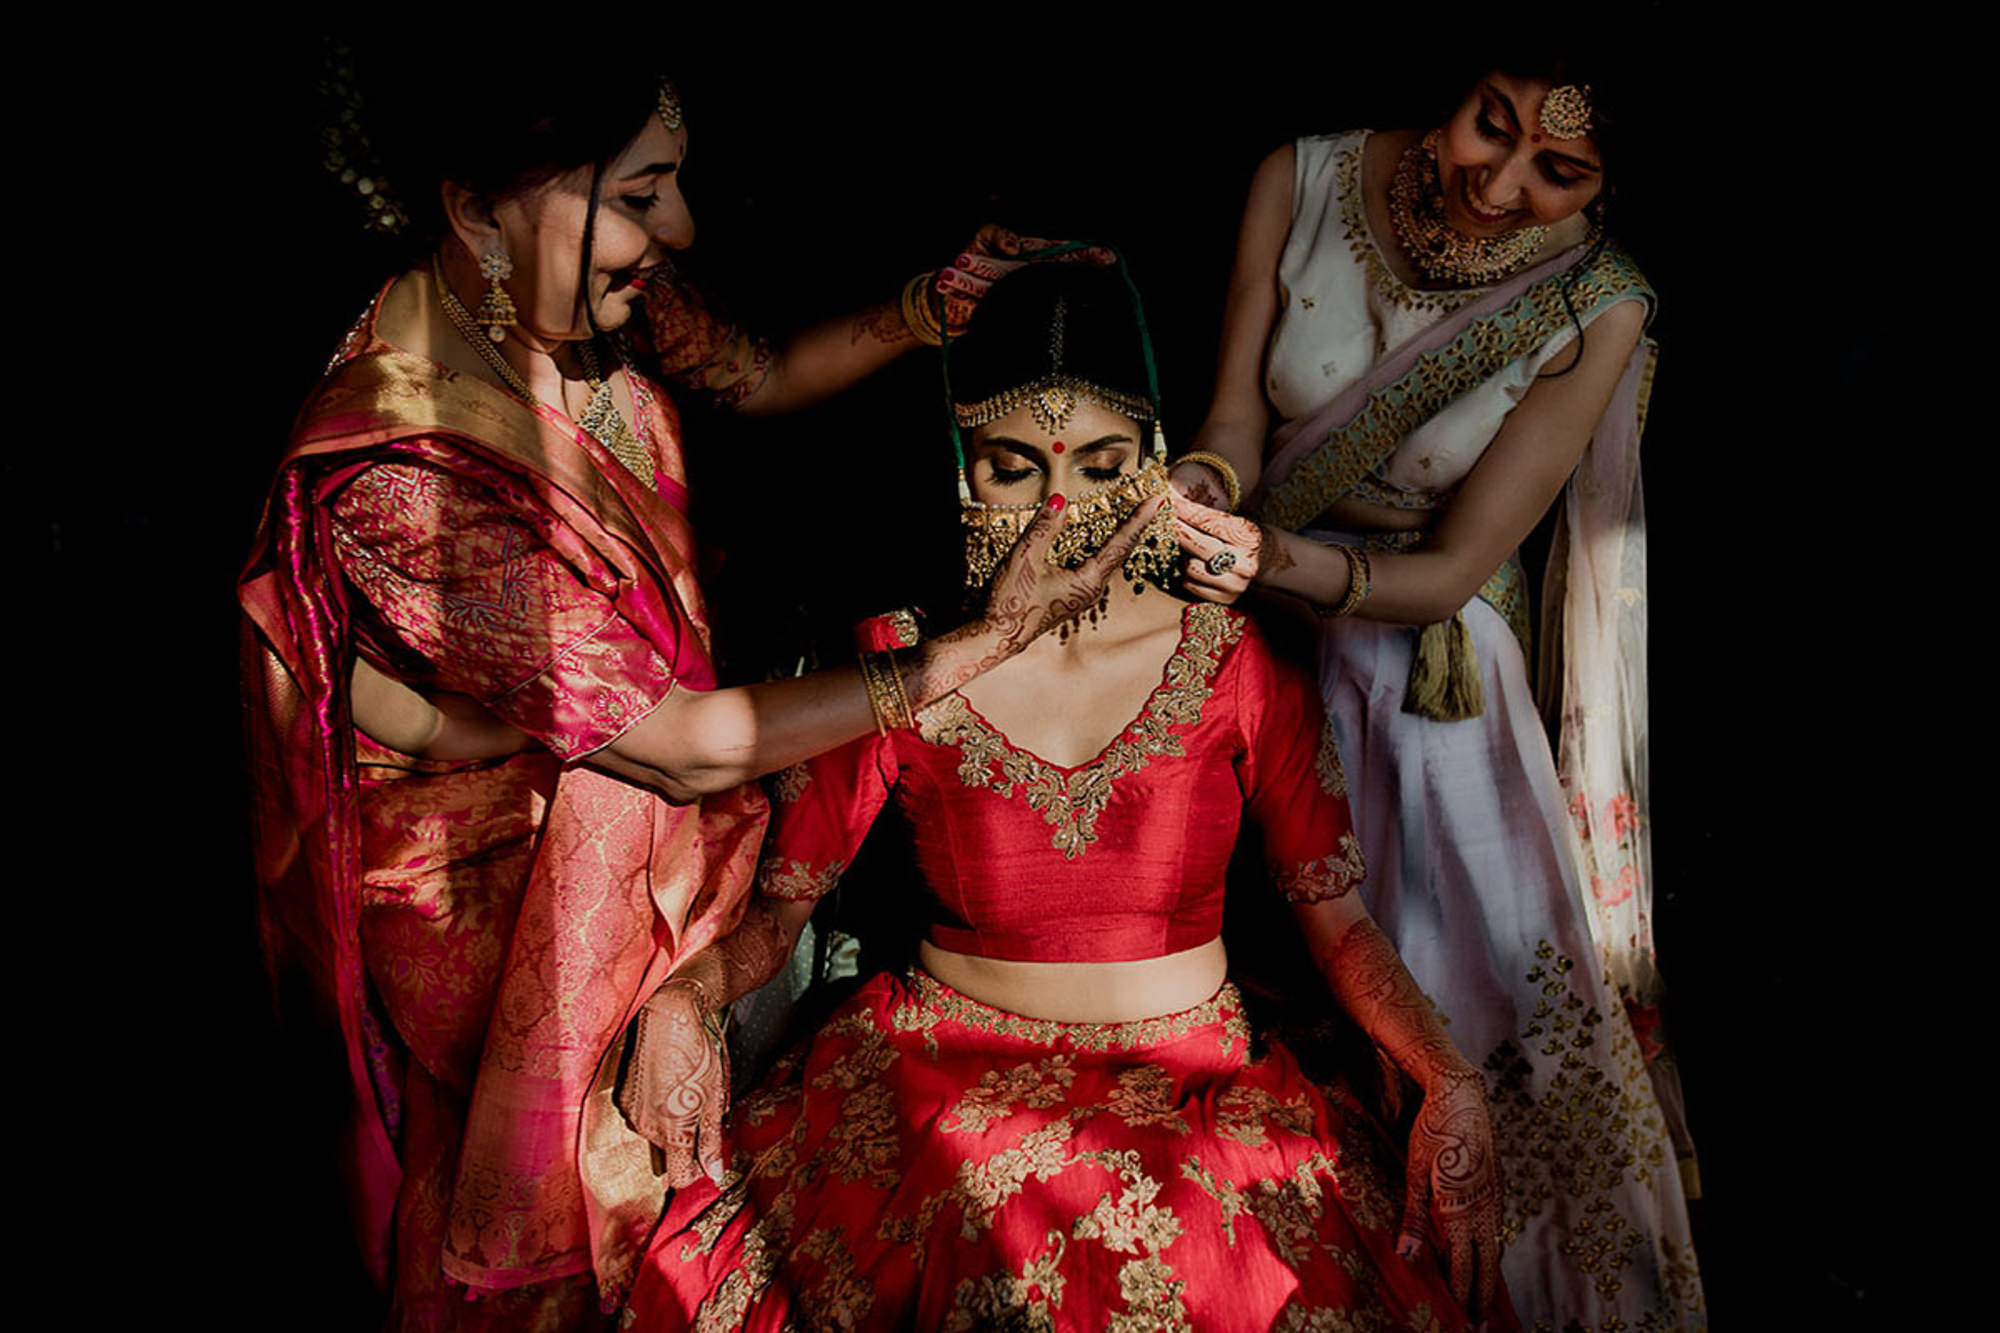 Family placing jewelry on Indian bride wearing red sari image by Rimi Sen